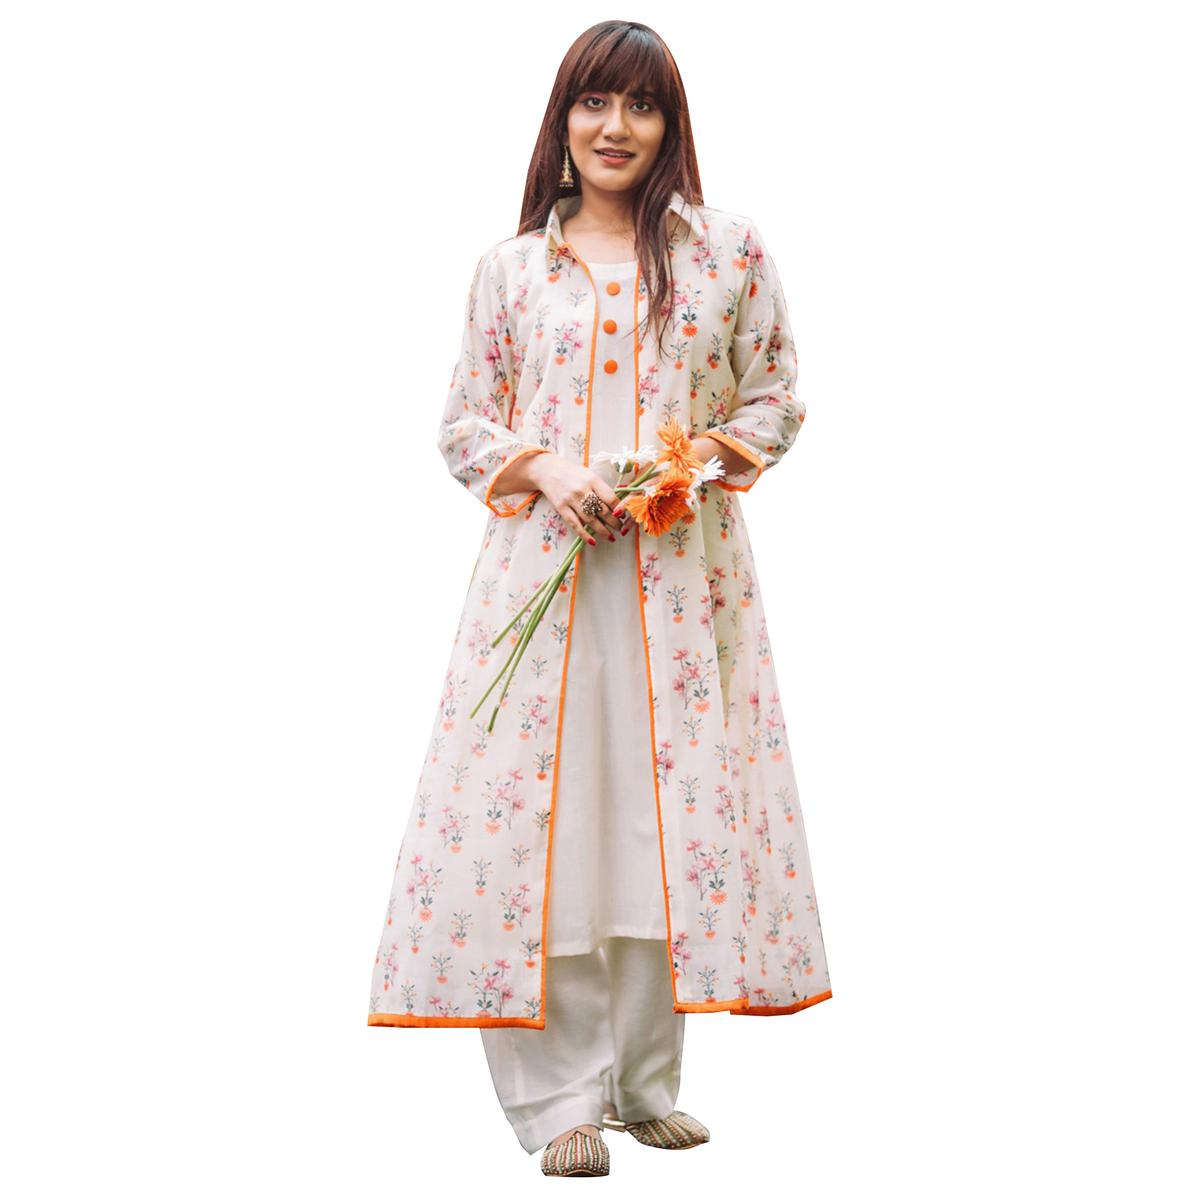 Appealing White Colored Partywear Printed Shrug Style Suit